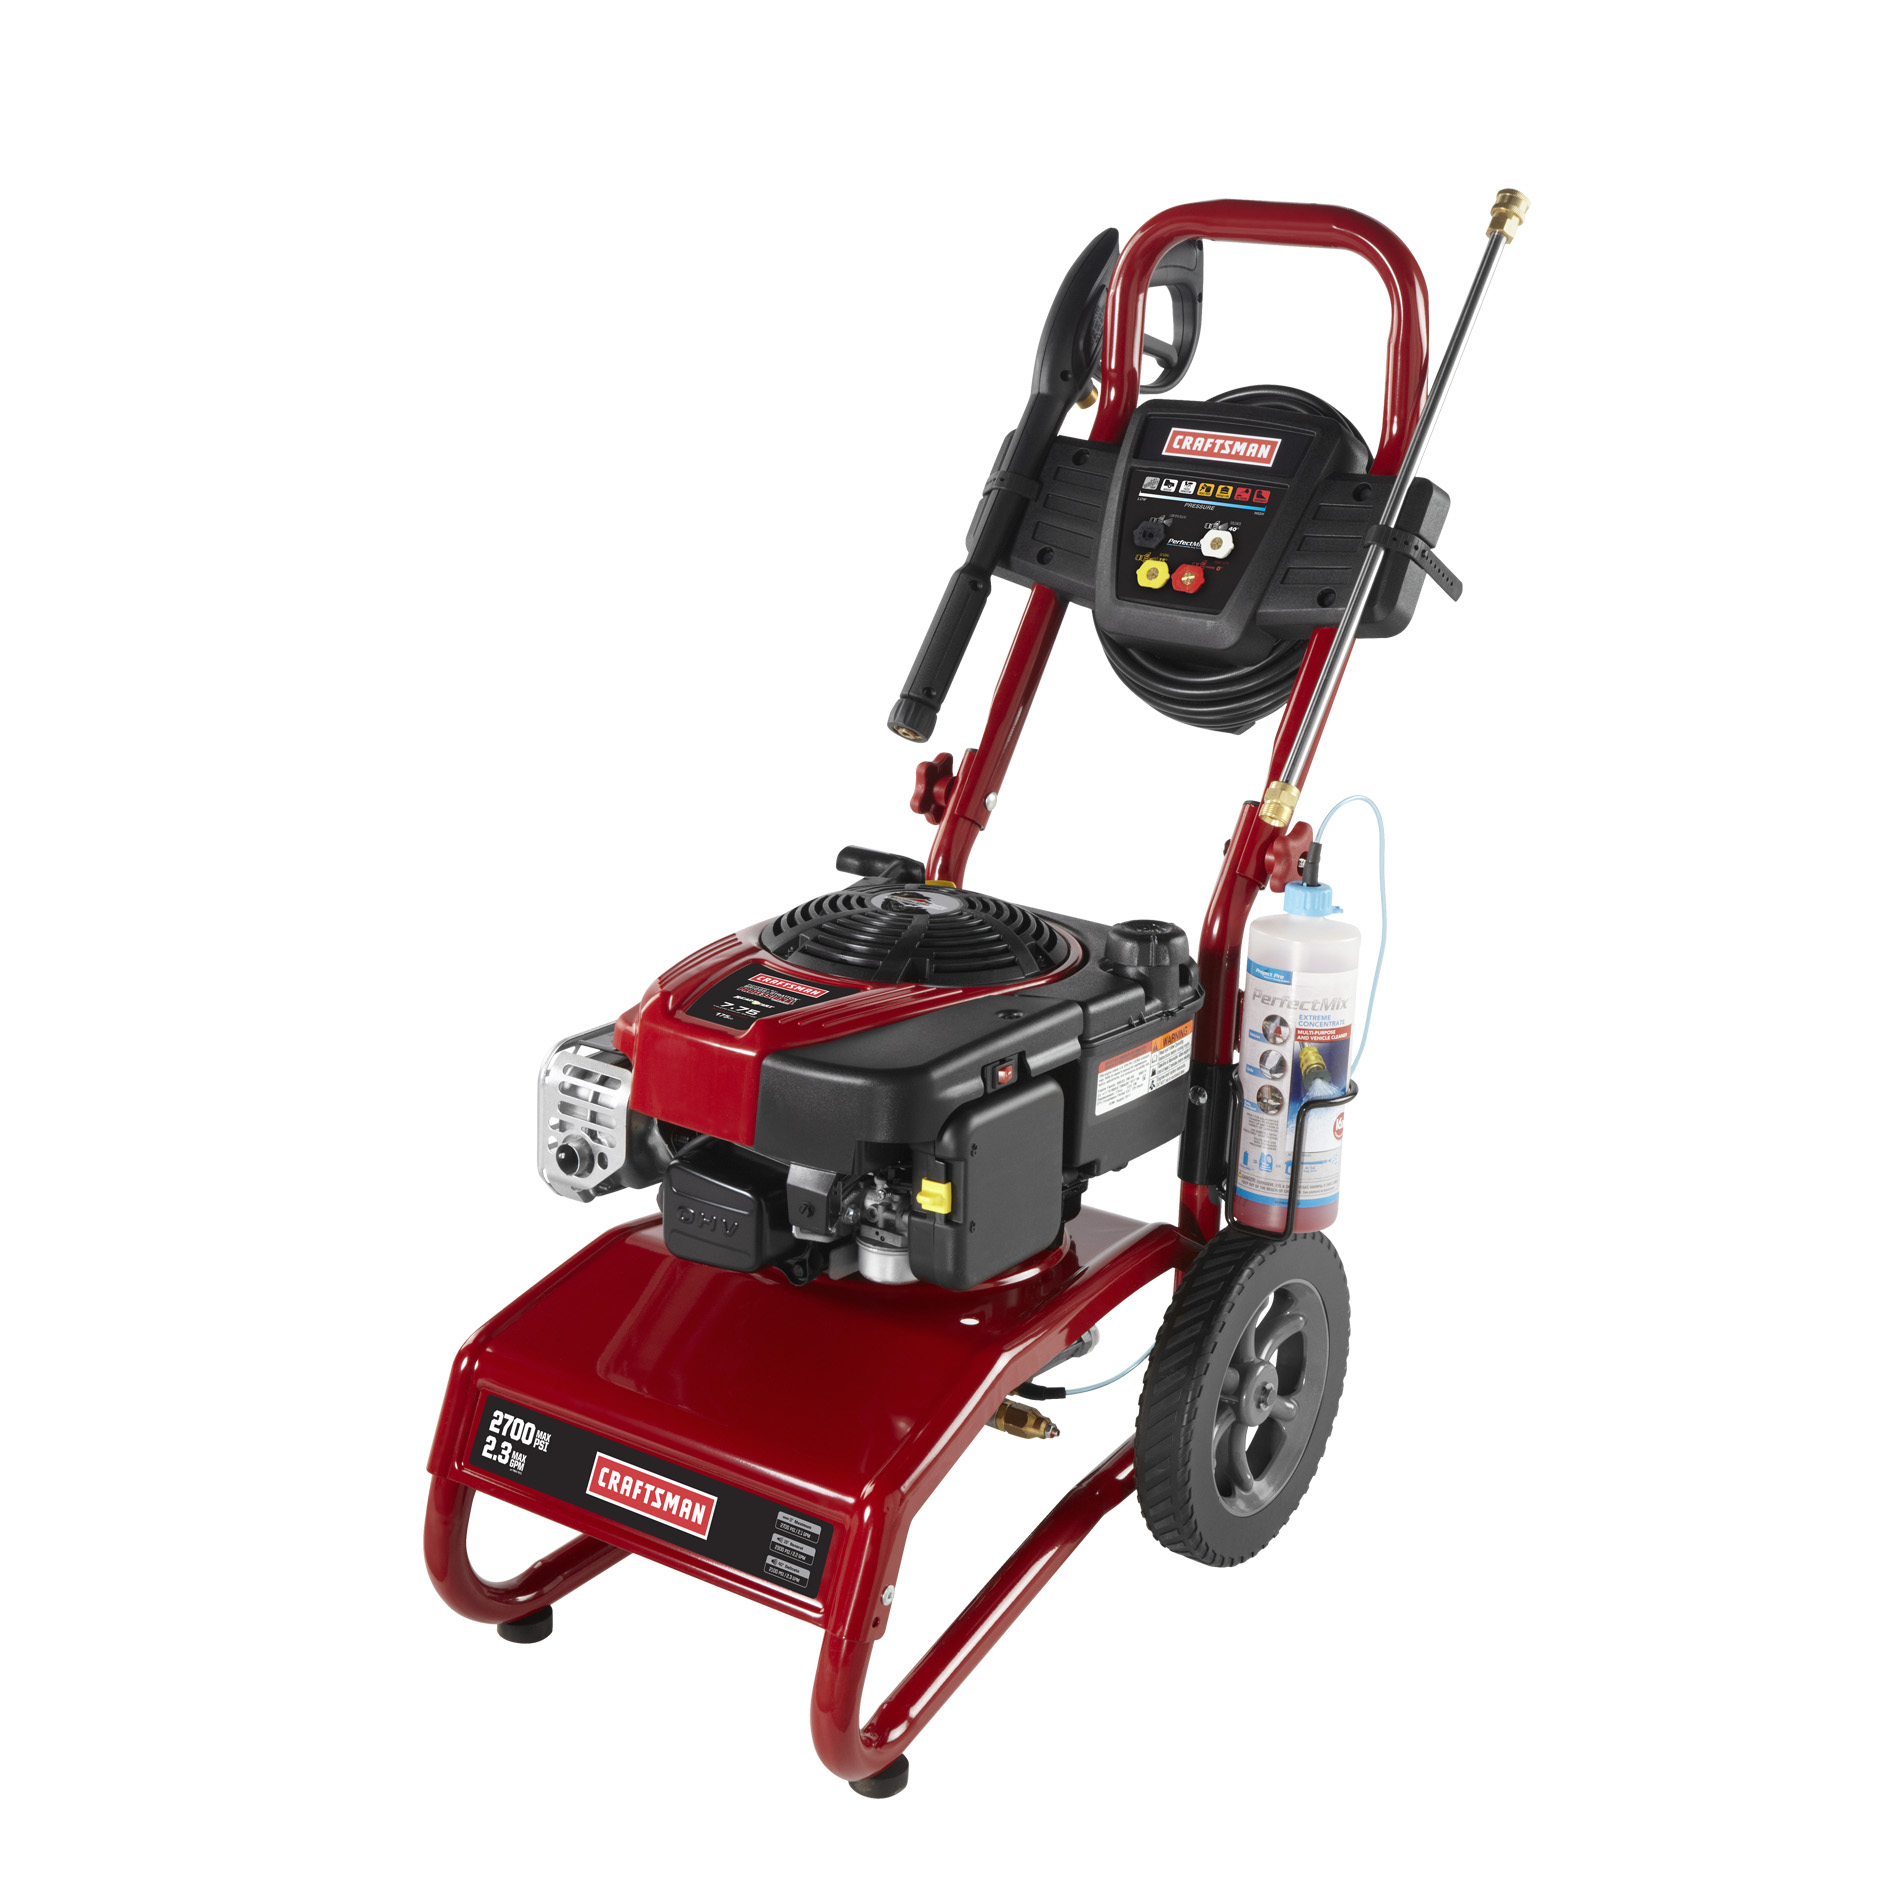 Craftsman 2700 PSI 2.3 GPM 4-Cycle Gas Powered Pressure Washer